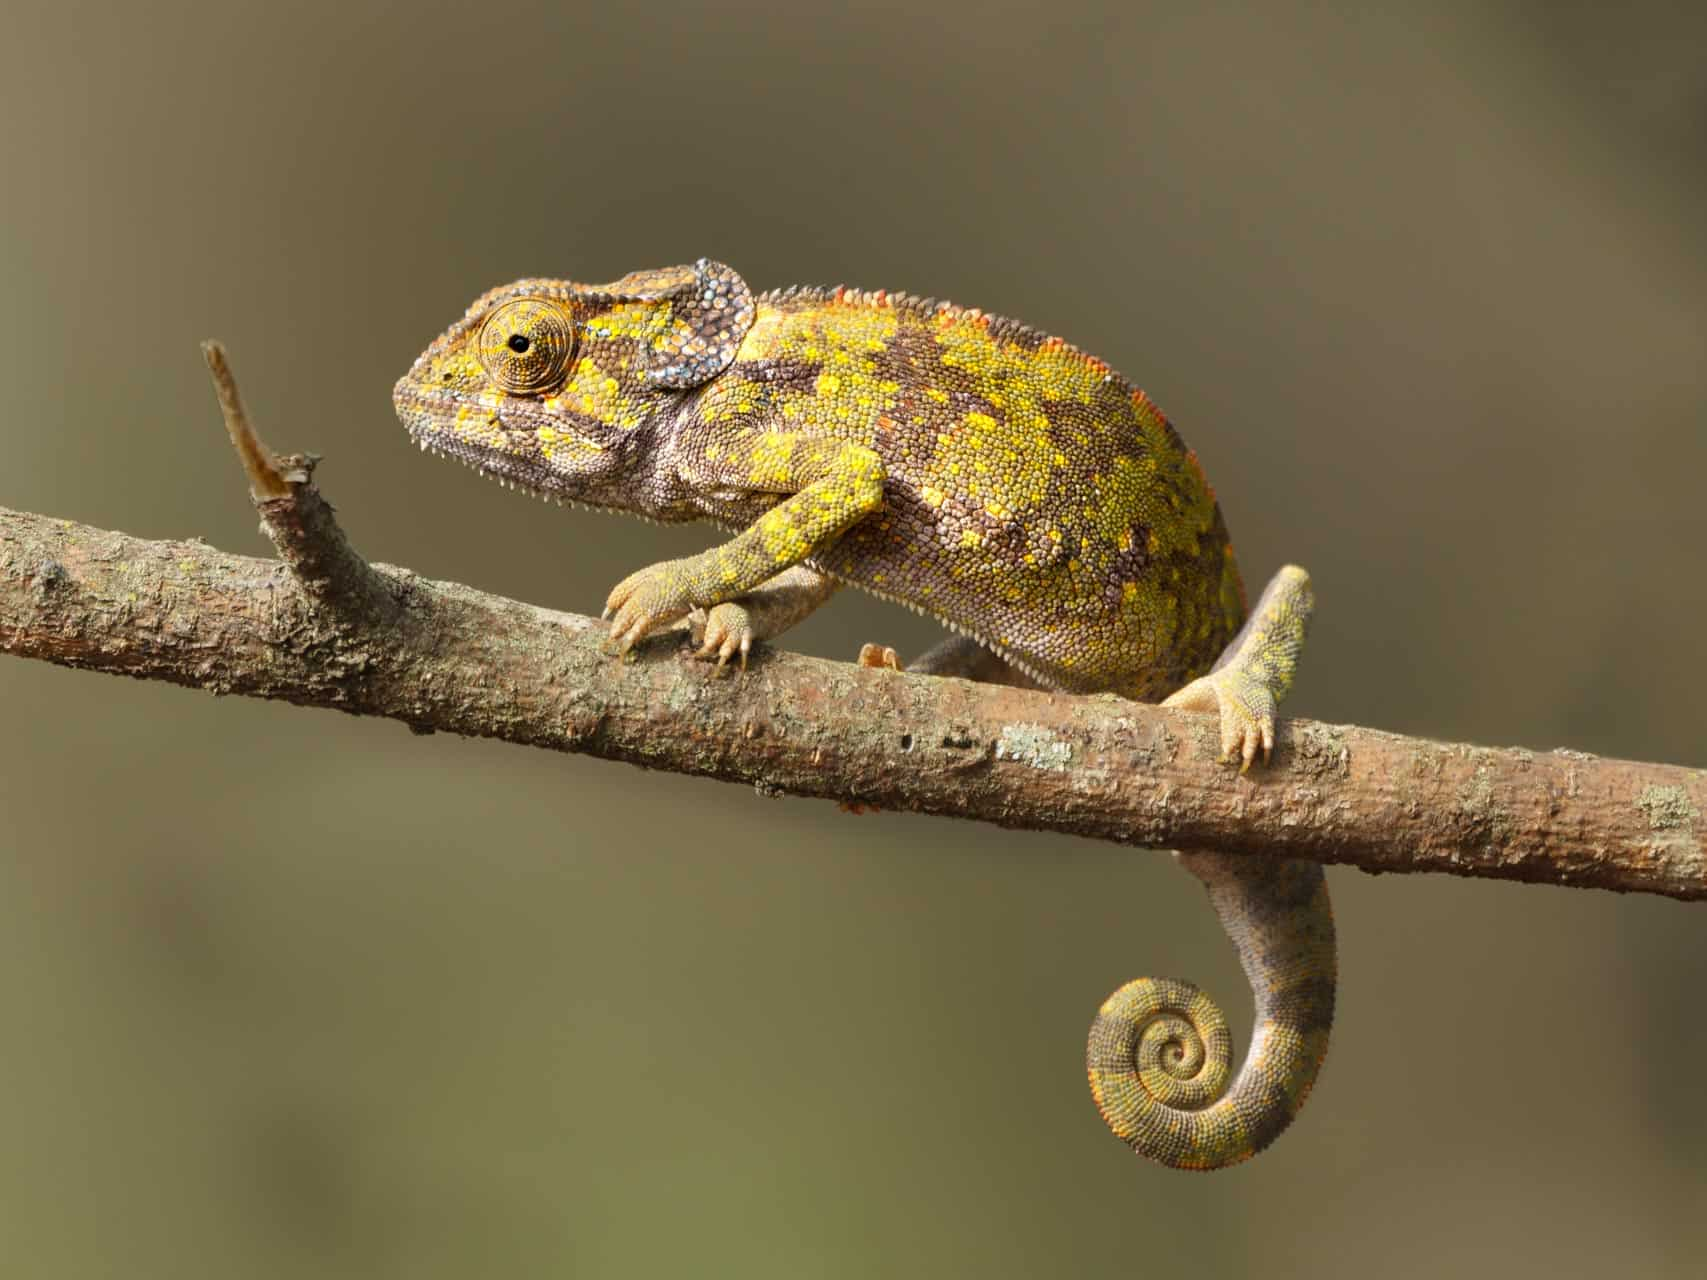 Chameleon, Old World lizards, Tanzania